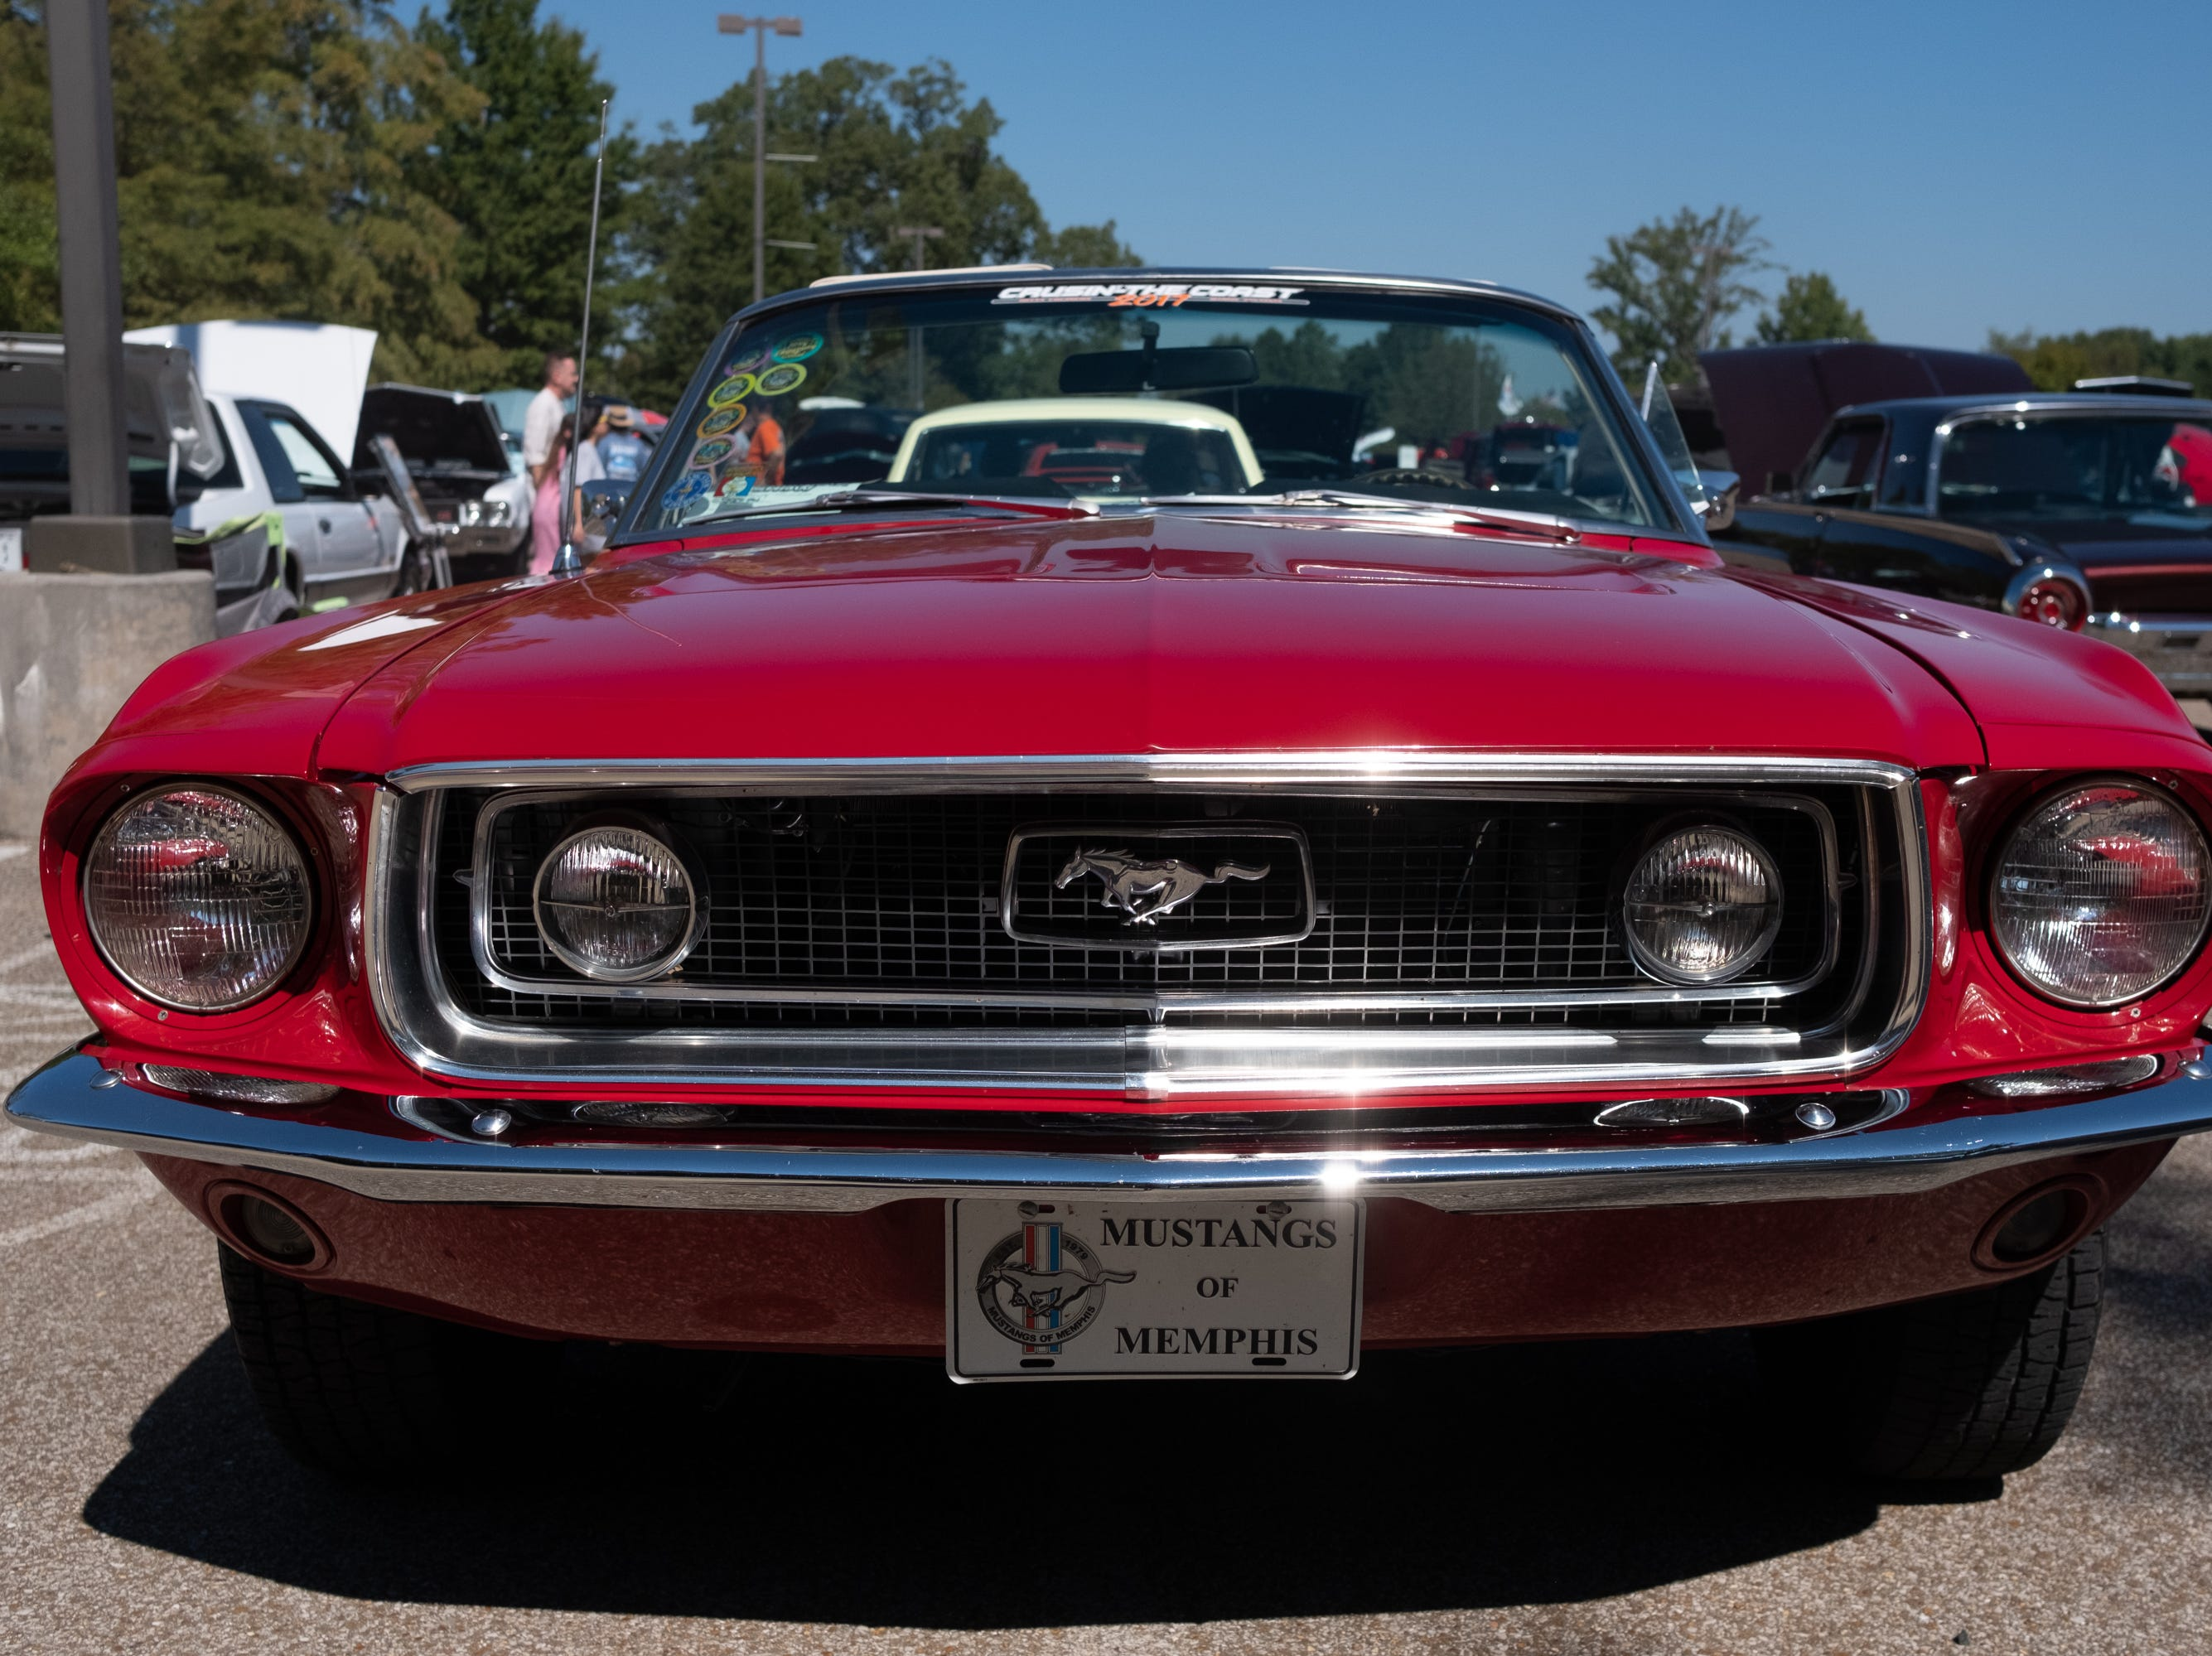 Mustangs of Memphis has a strong presence at the Collierville Classic Car Show on Sept. 15, 2018.